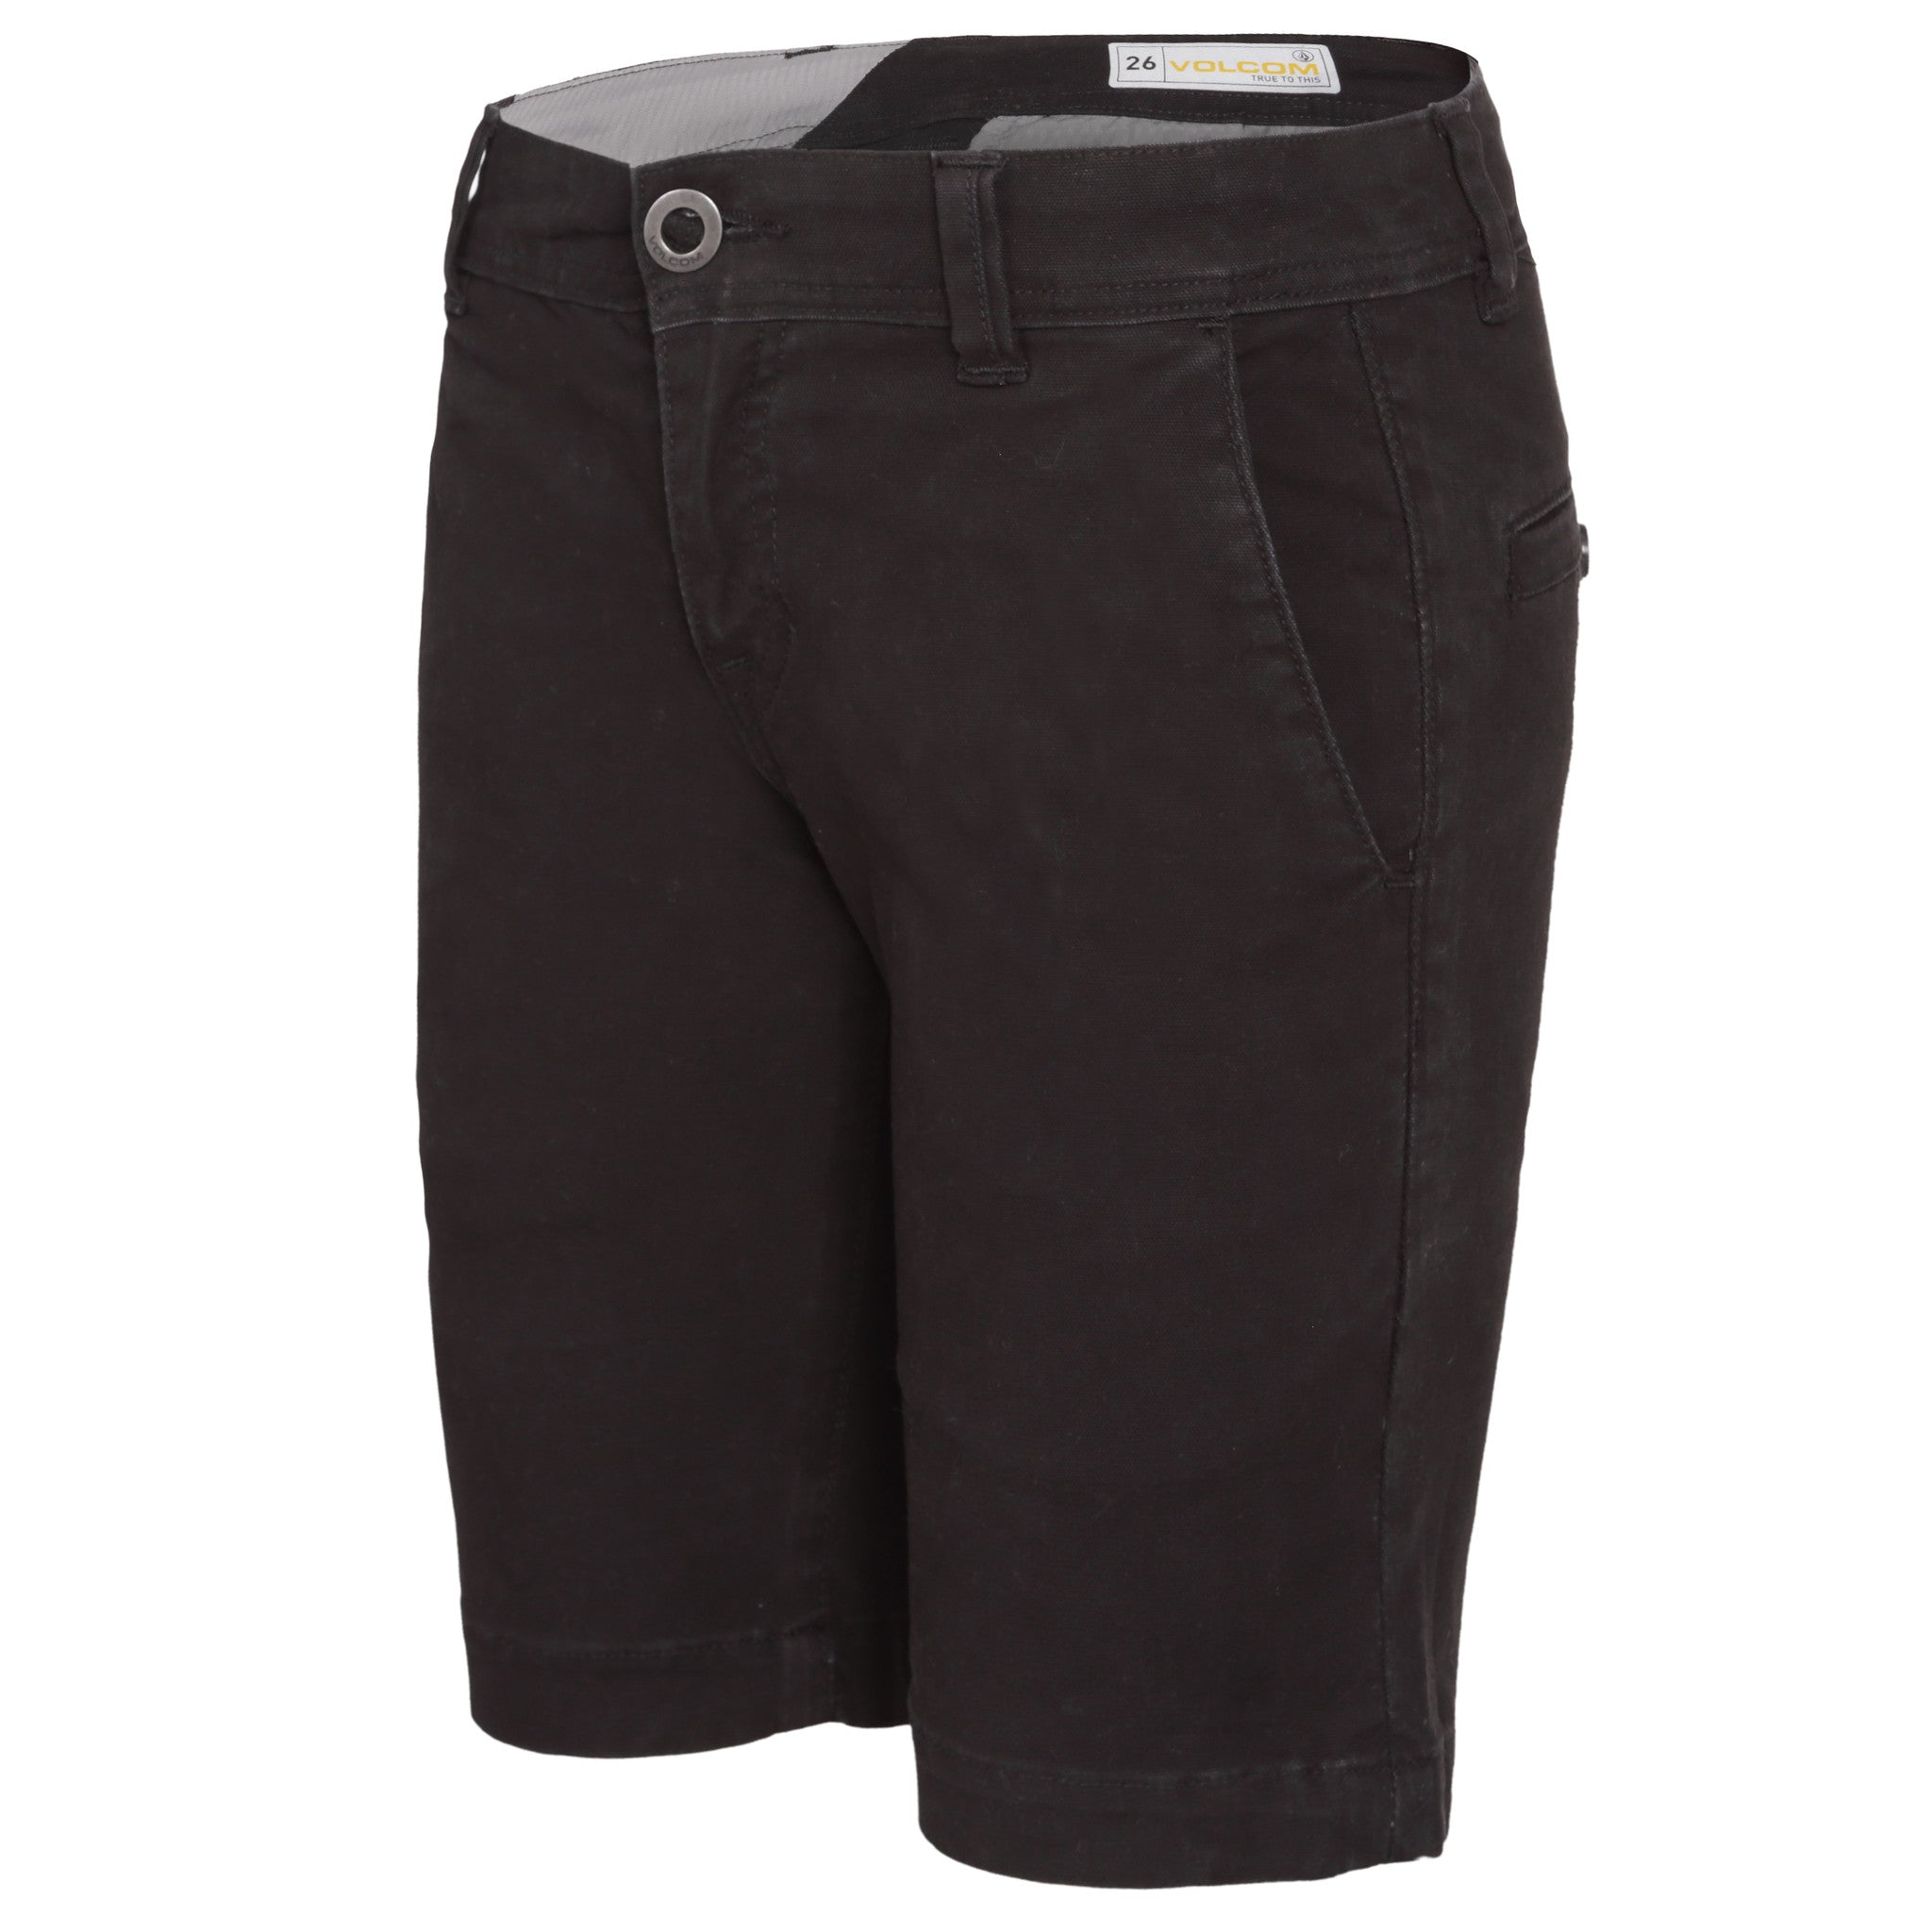 Frickin Slim Short Black - Stoked Boardshop